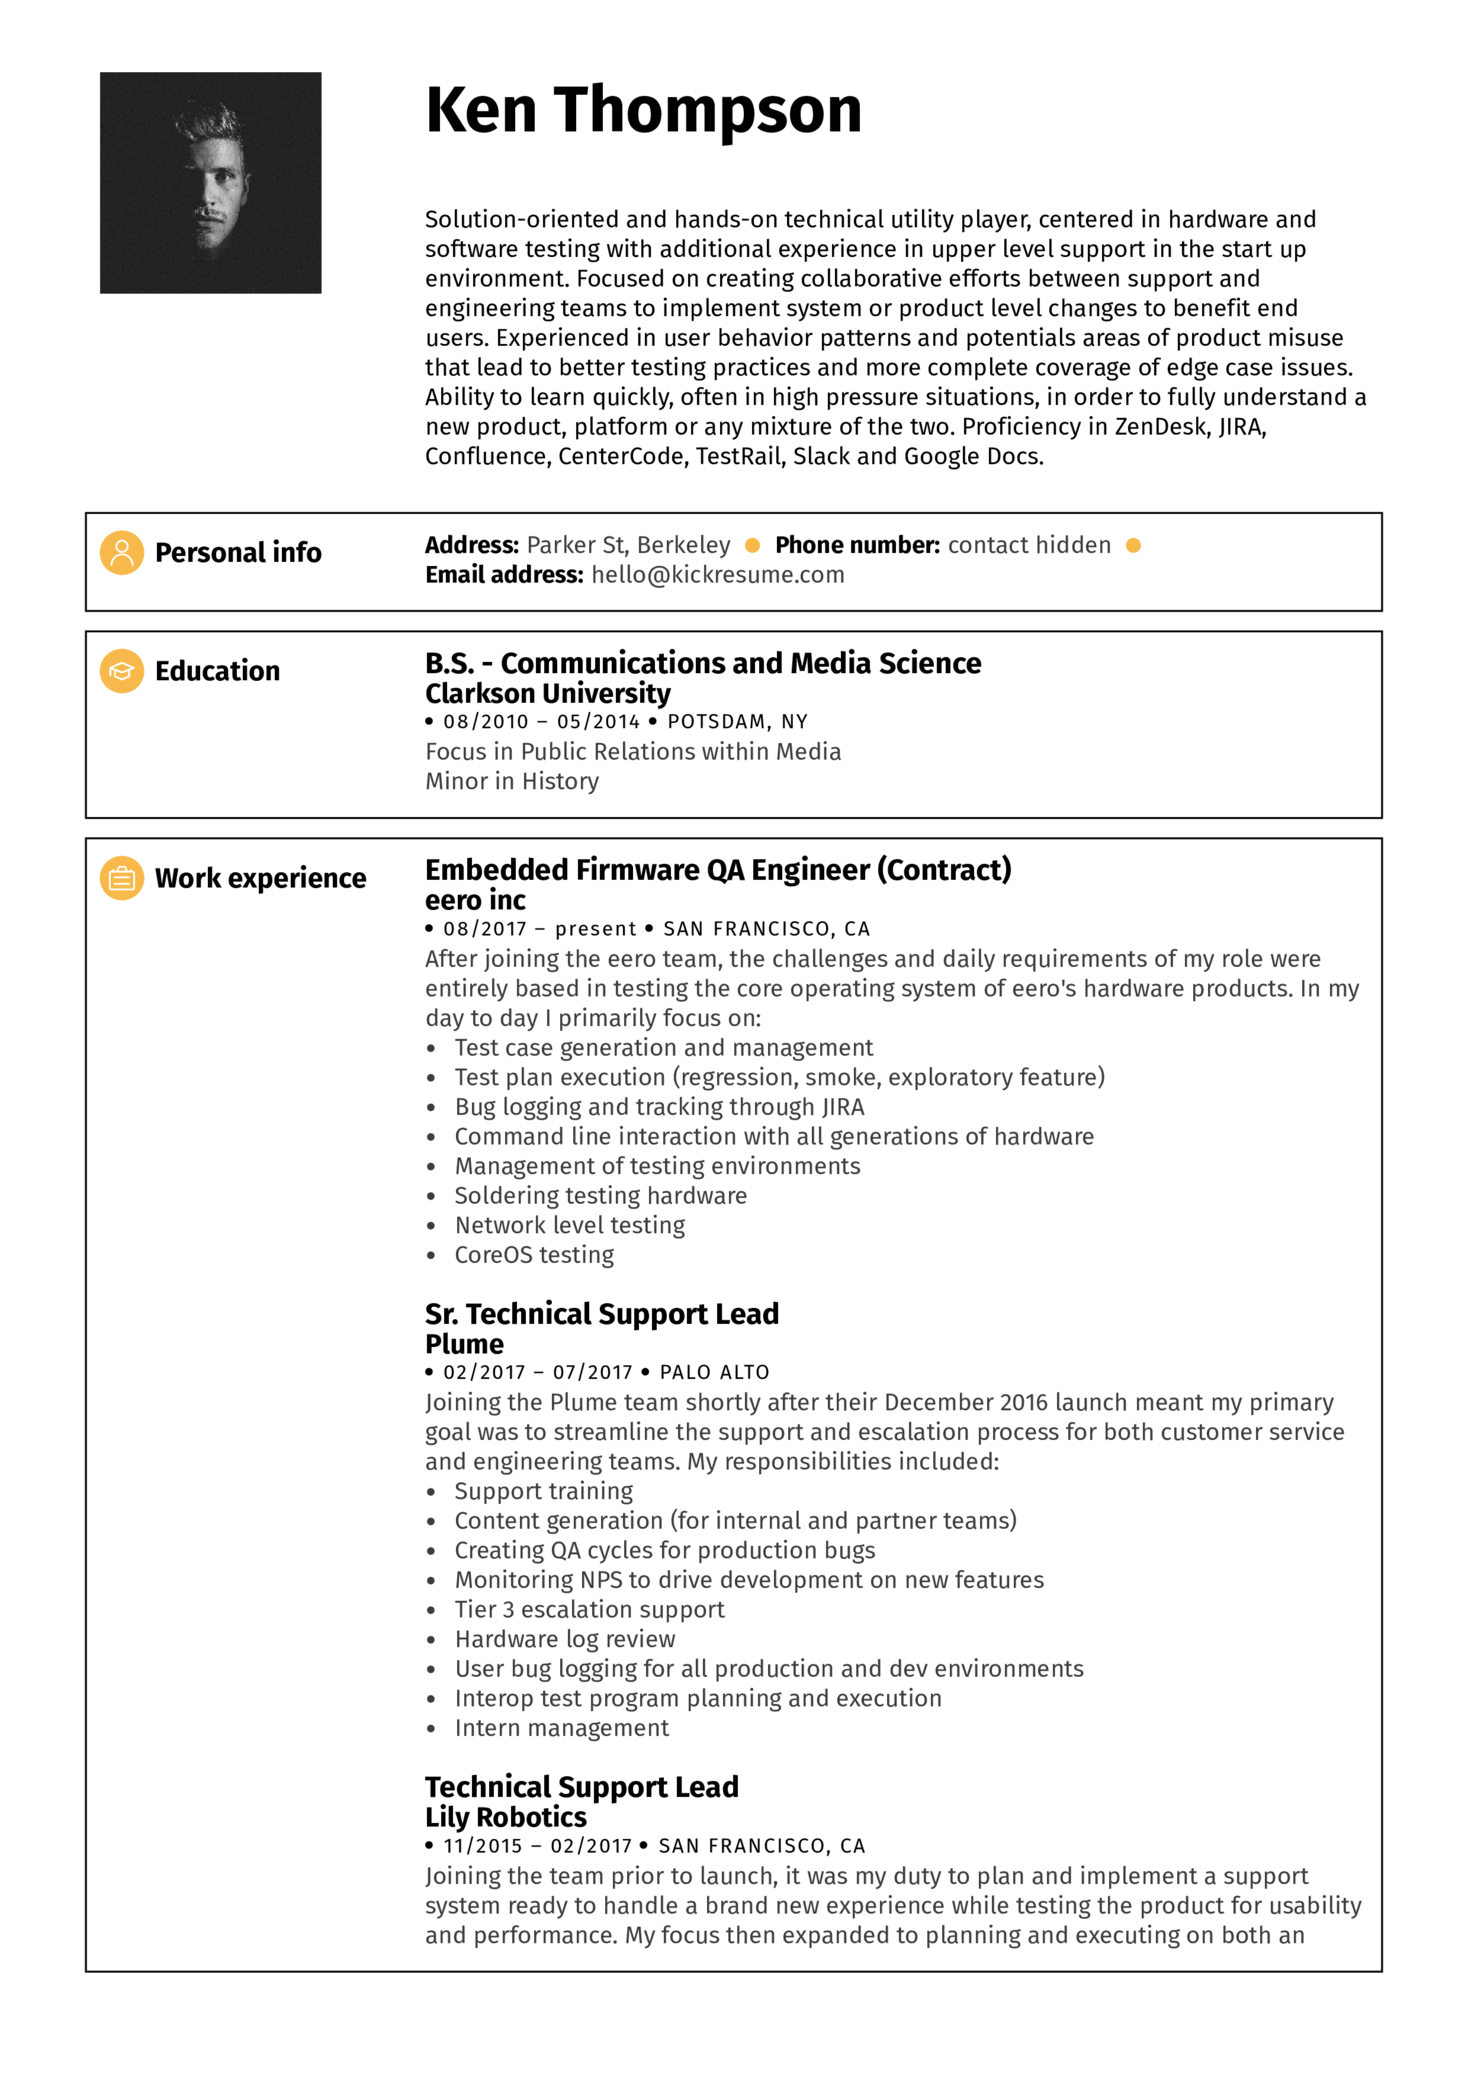 Resume Examples by Real People: QA engineer resume example | Kickresume